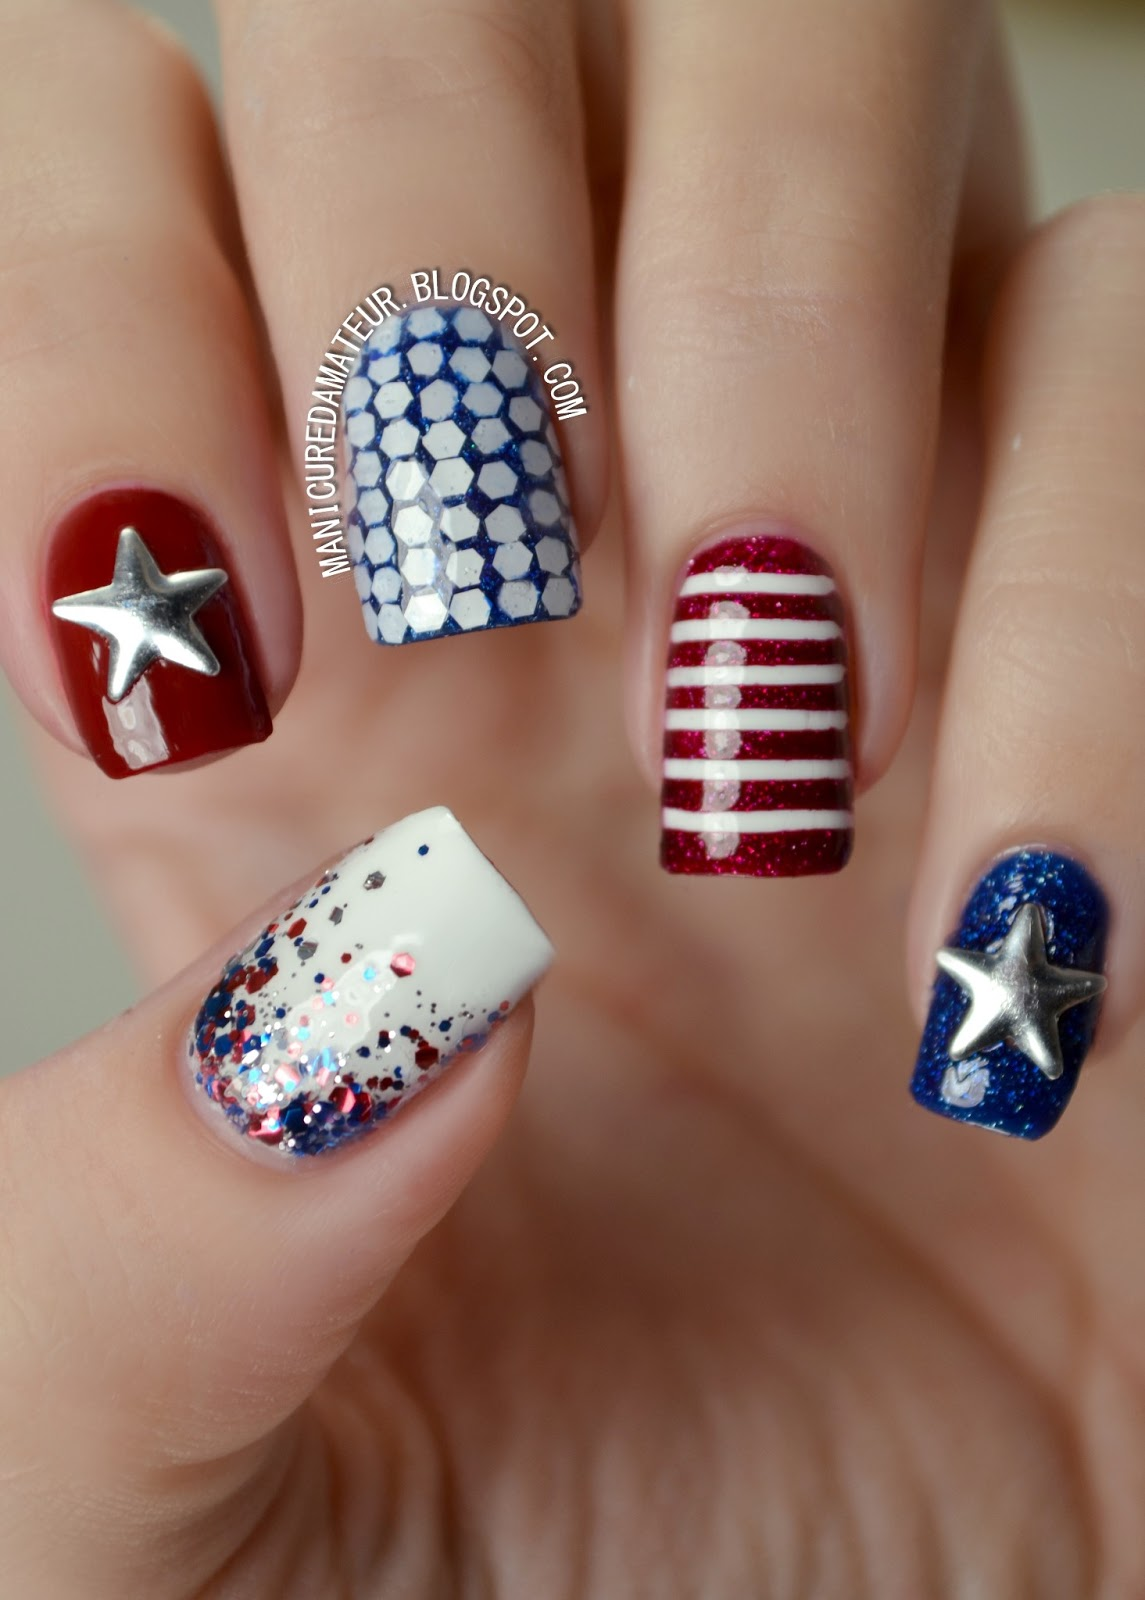 The Manicured Amateur: Happy Independence Day! 4th of July Nail Art